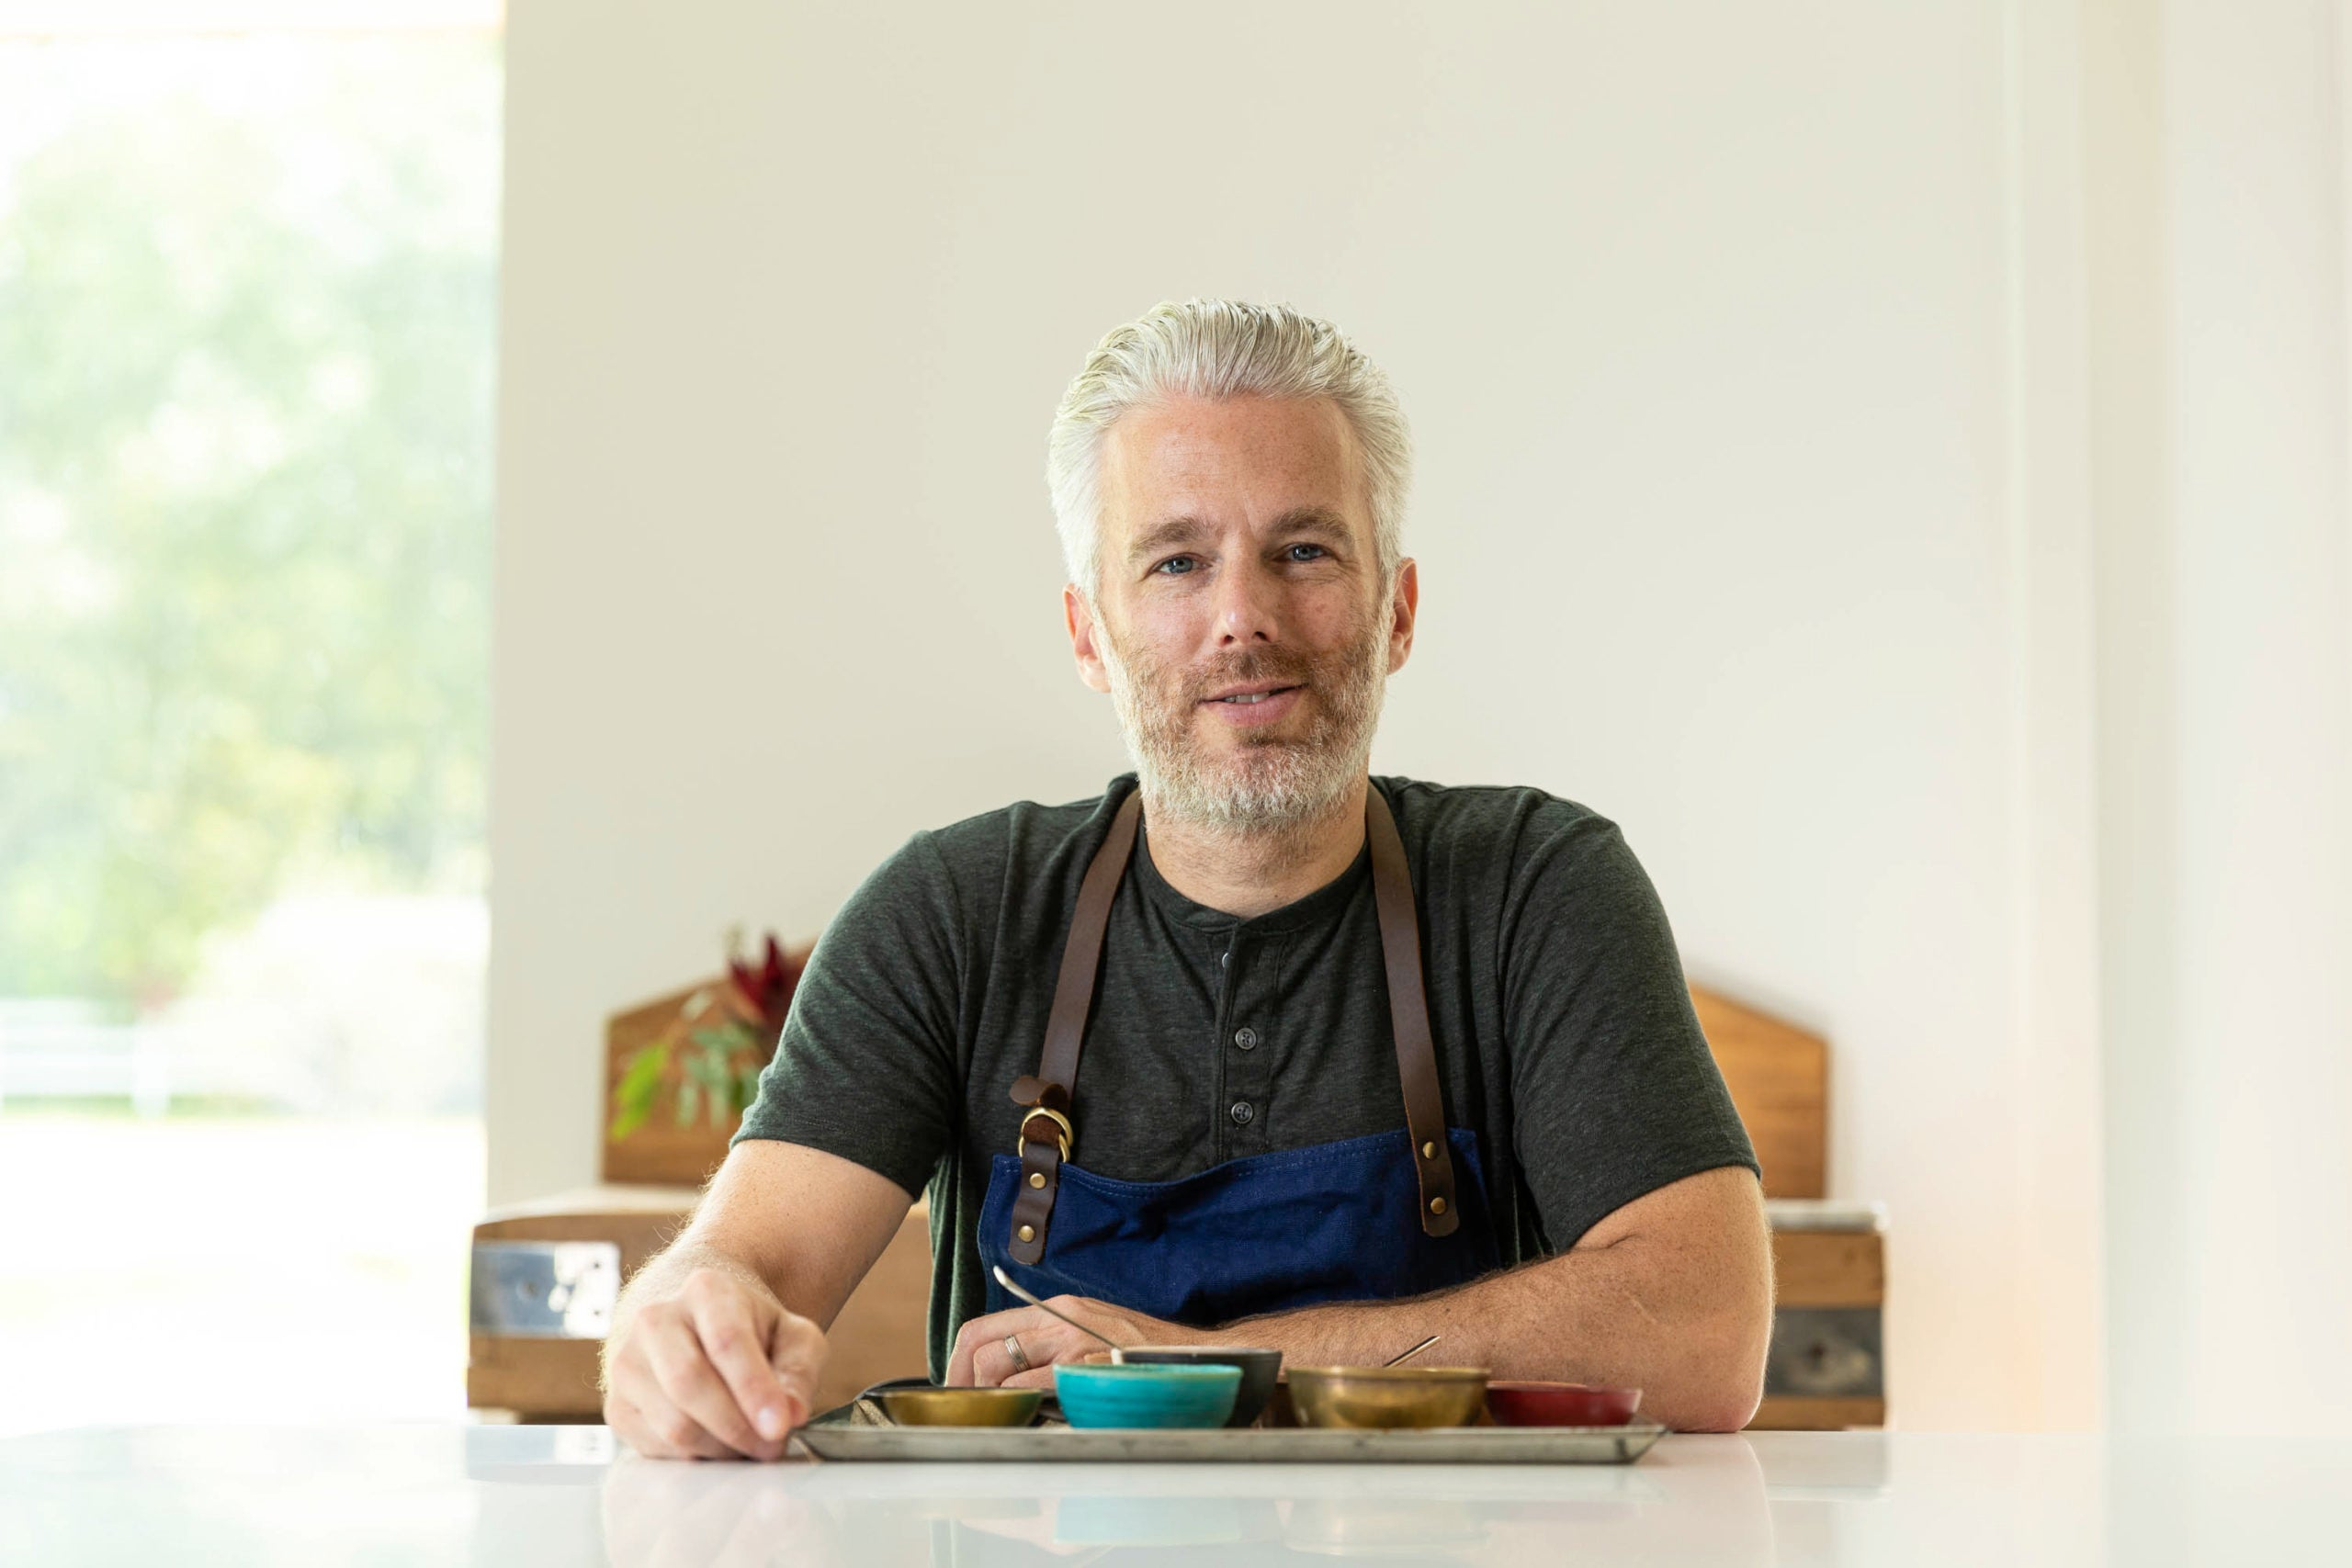 Israeli chef and spice master Lior Lev Sercarz is sitting at a kitchen counter